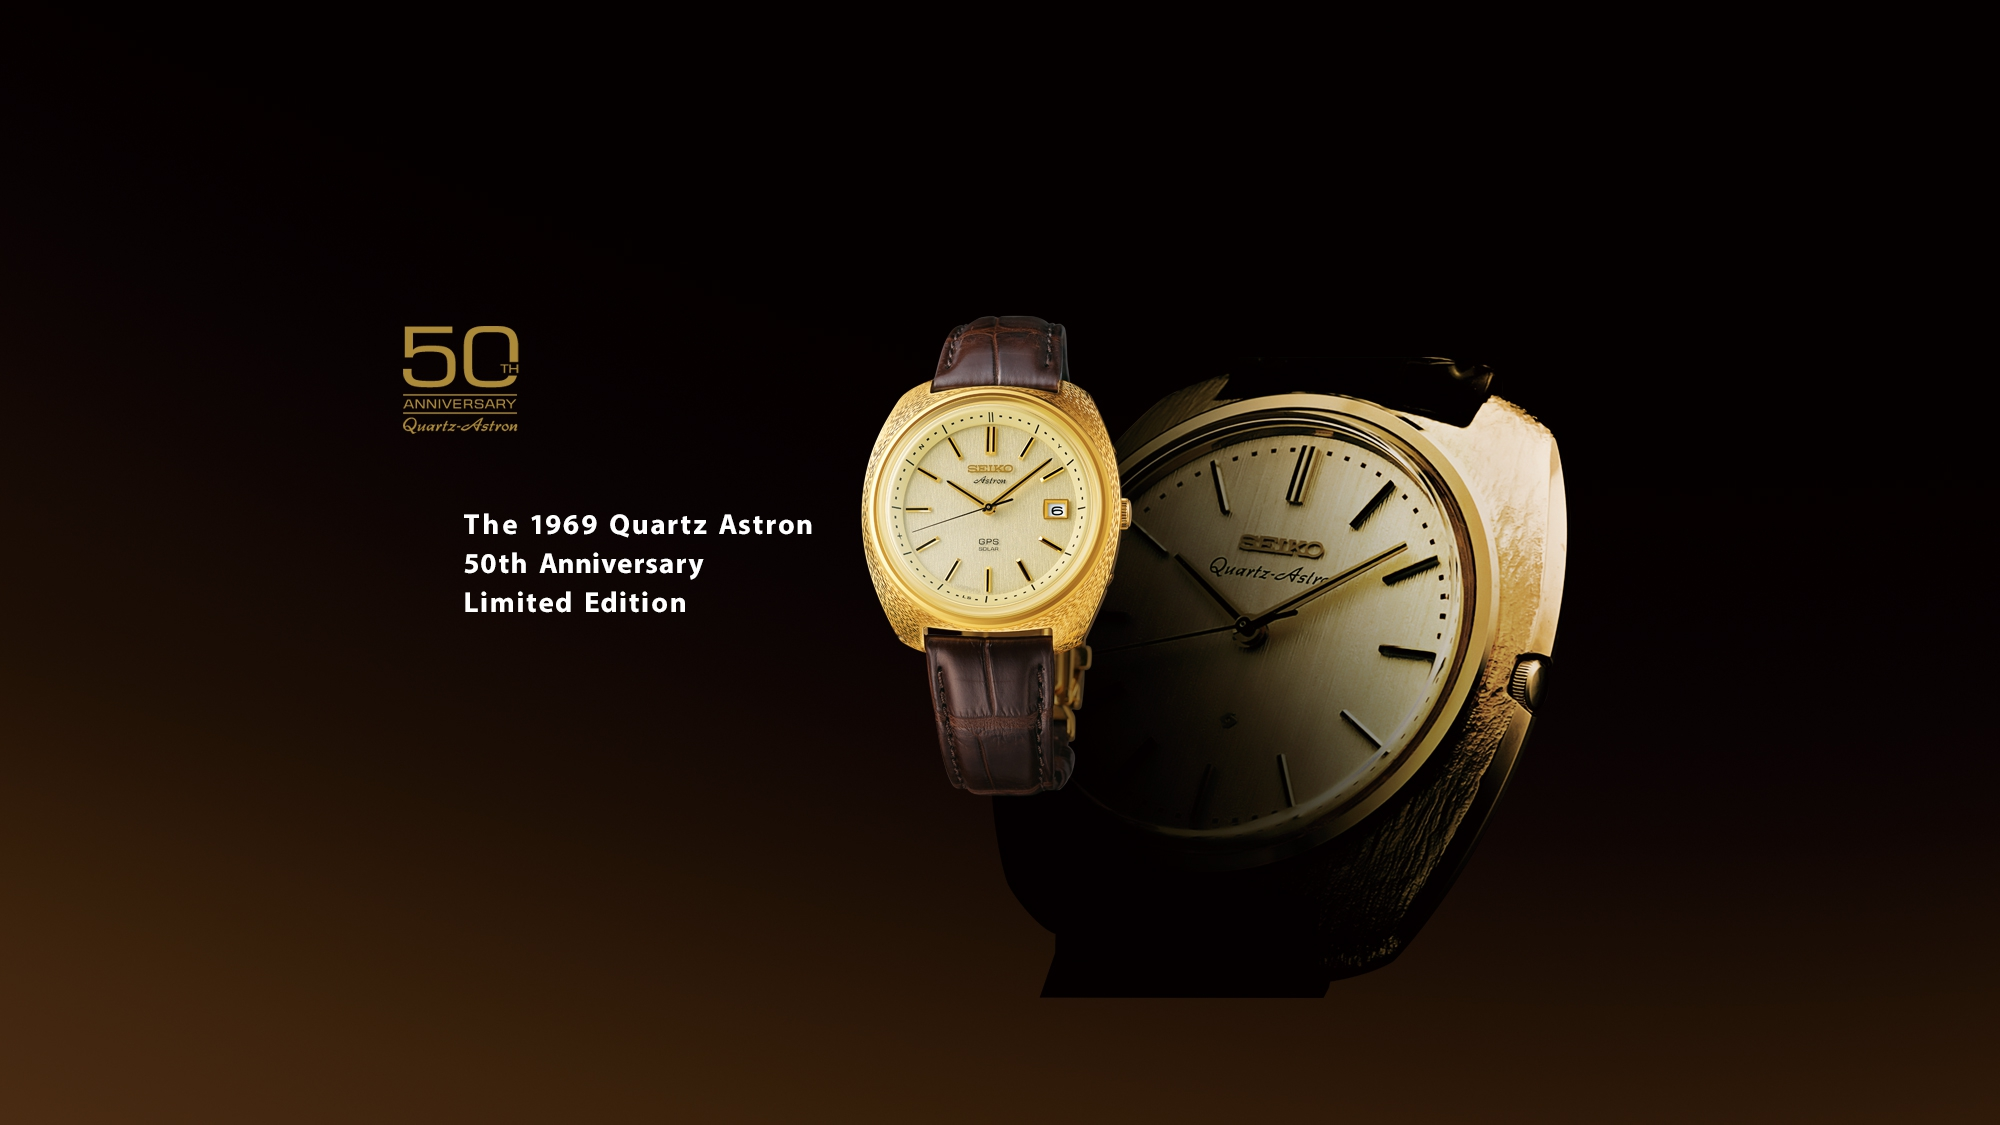 50th Anniversary Quartz Astron. The 1969 Quartz Astron 50th Anniversary Limited Edition